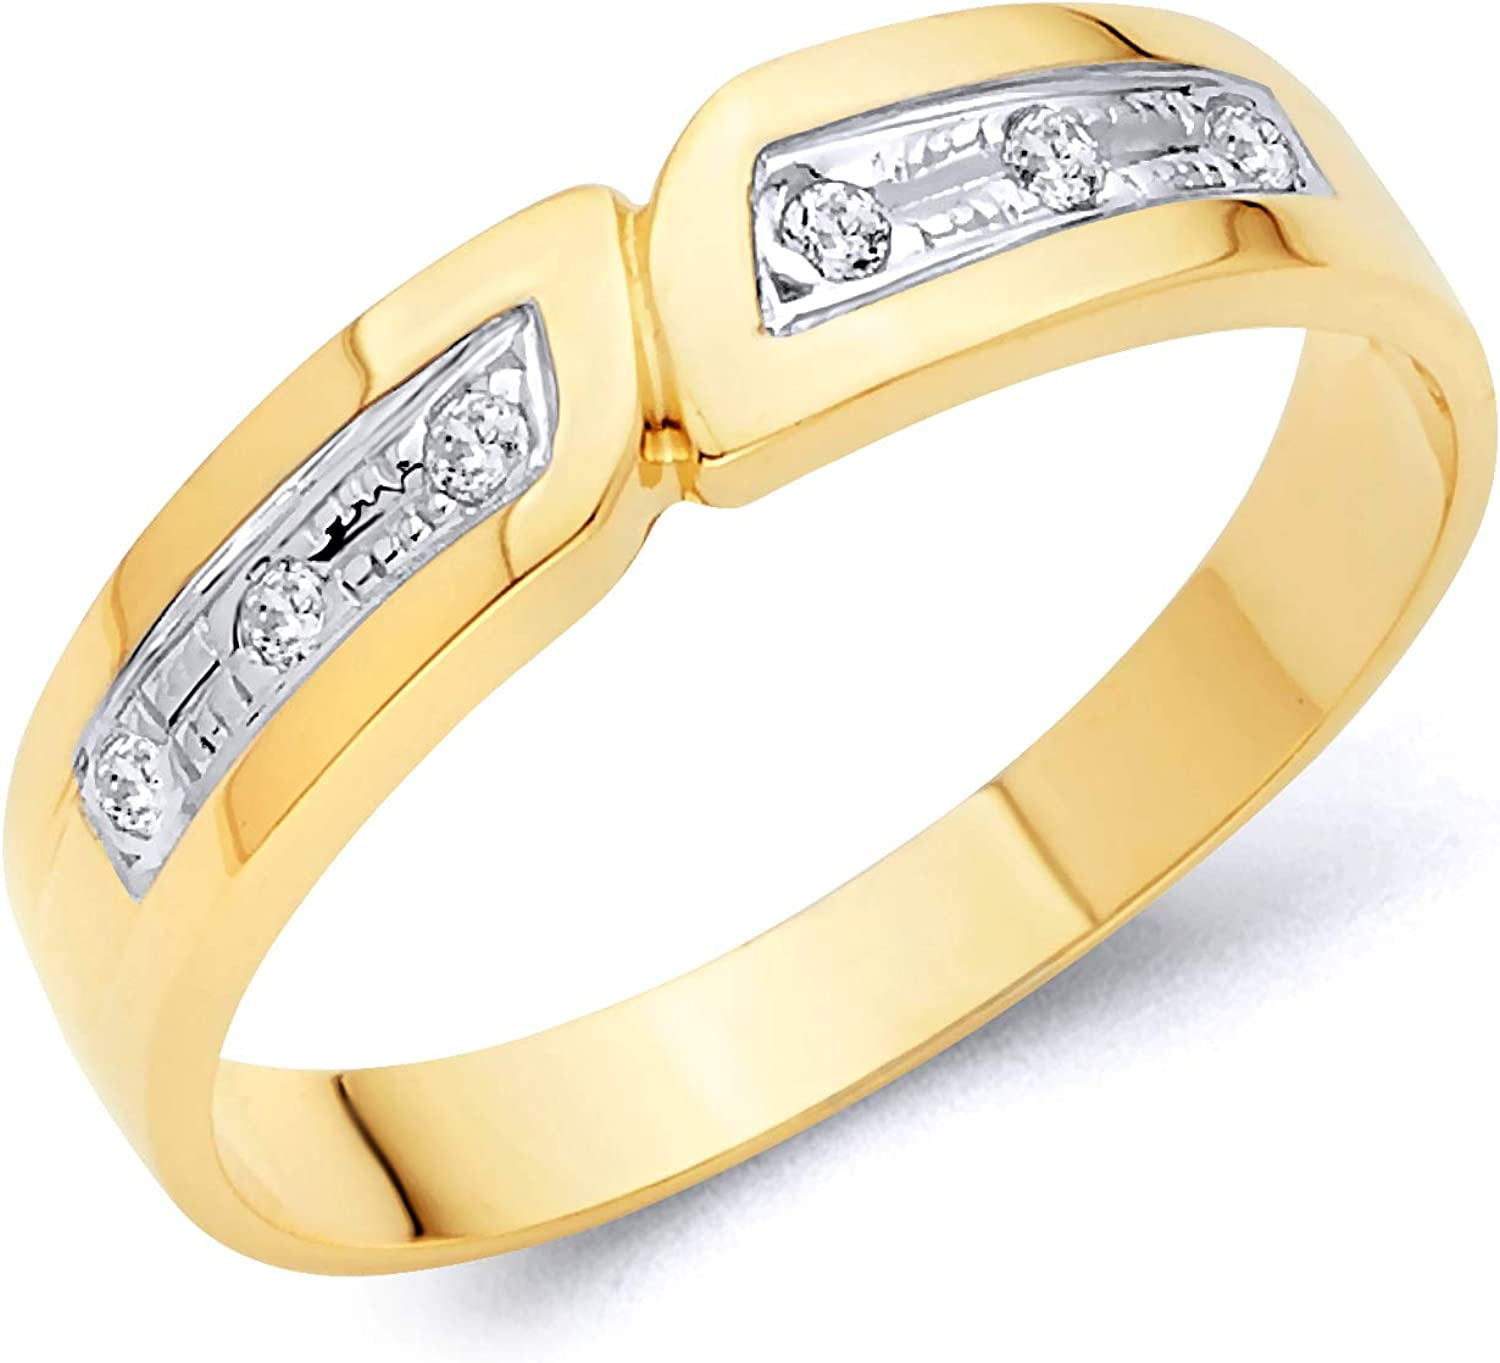 Wellingsale Mens Solid 14k Tri 3 Color Gold Polished CZ Cubic Zirconia Wedding Band